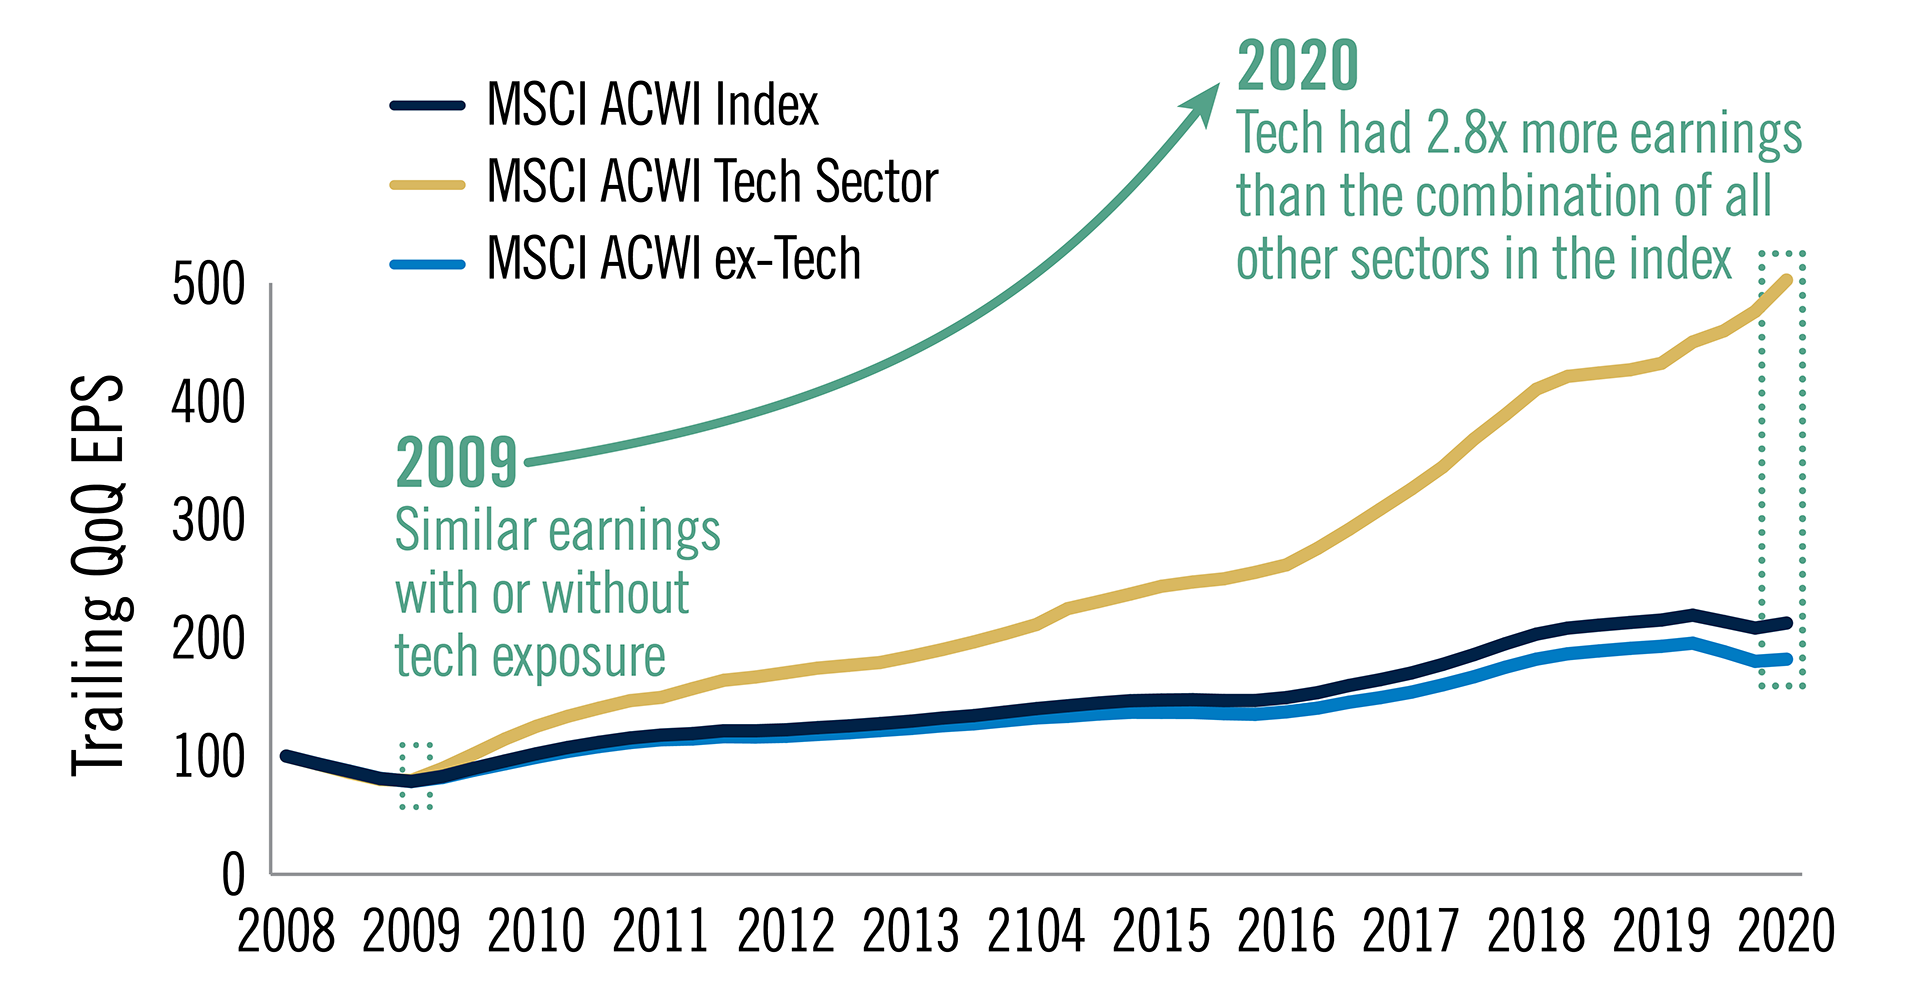 Chart shows that in 2009 the tech sector earnings growth was similar to the MSCI ACWI and MSCI ACWI-ex tech sector, but by 2020, the tech sector had 2.8 times more earnings than the combination of all other sectors in the index.